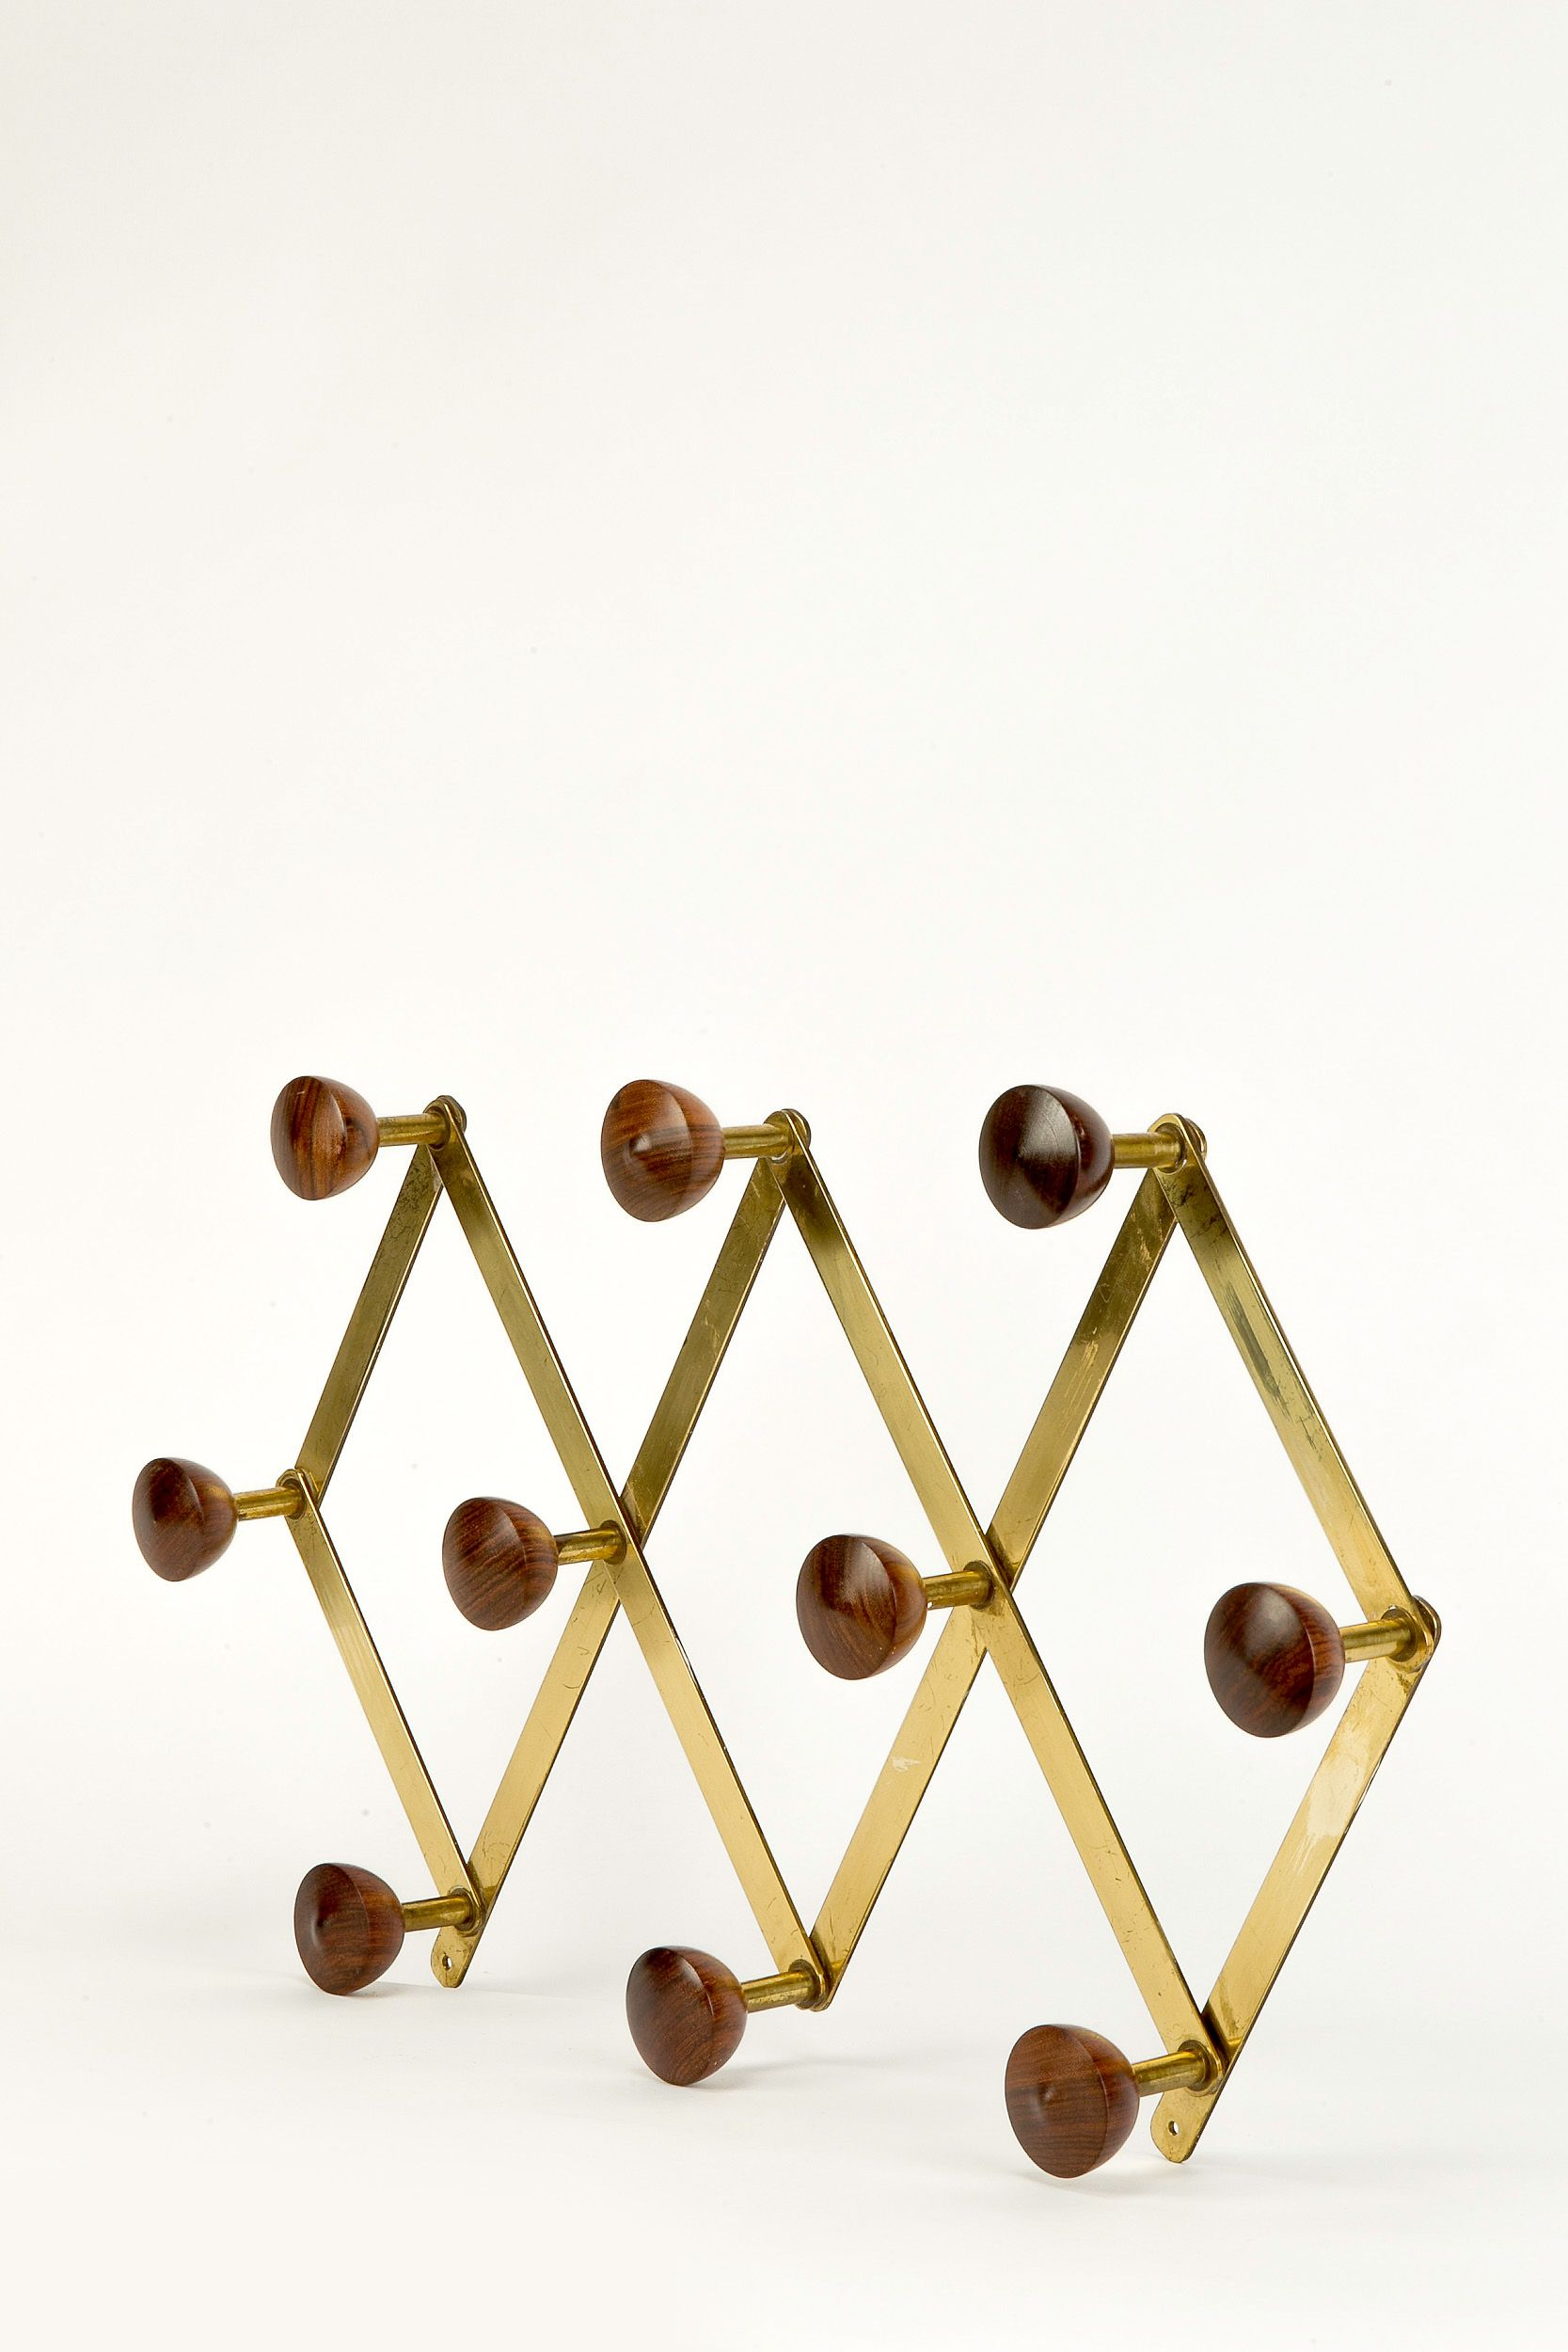 Luigi Caccia Dominioni; Brass and Rosewood Coat Rack for Azucena, 1950s.